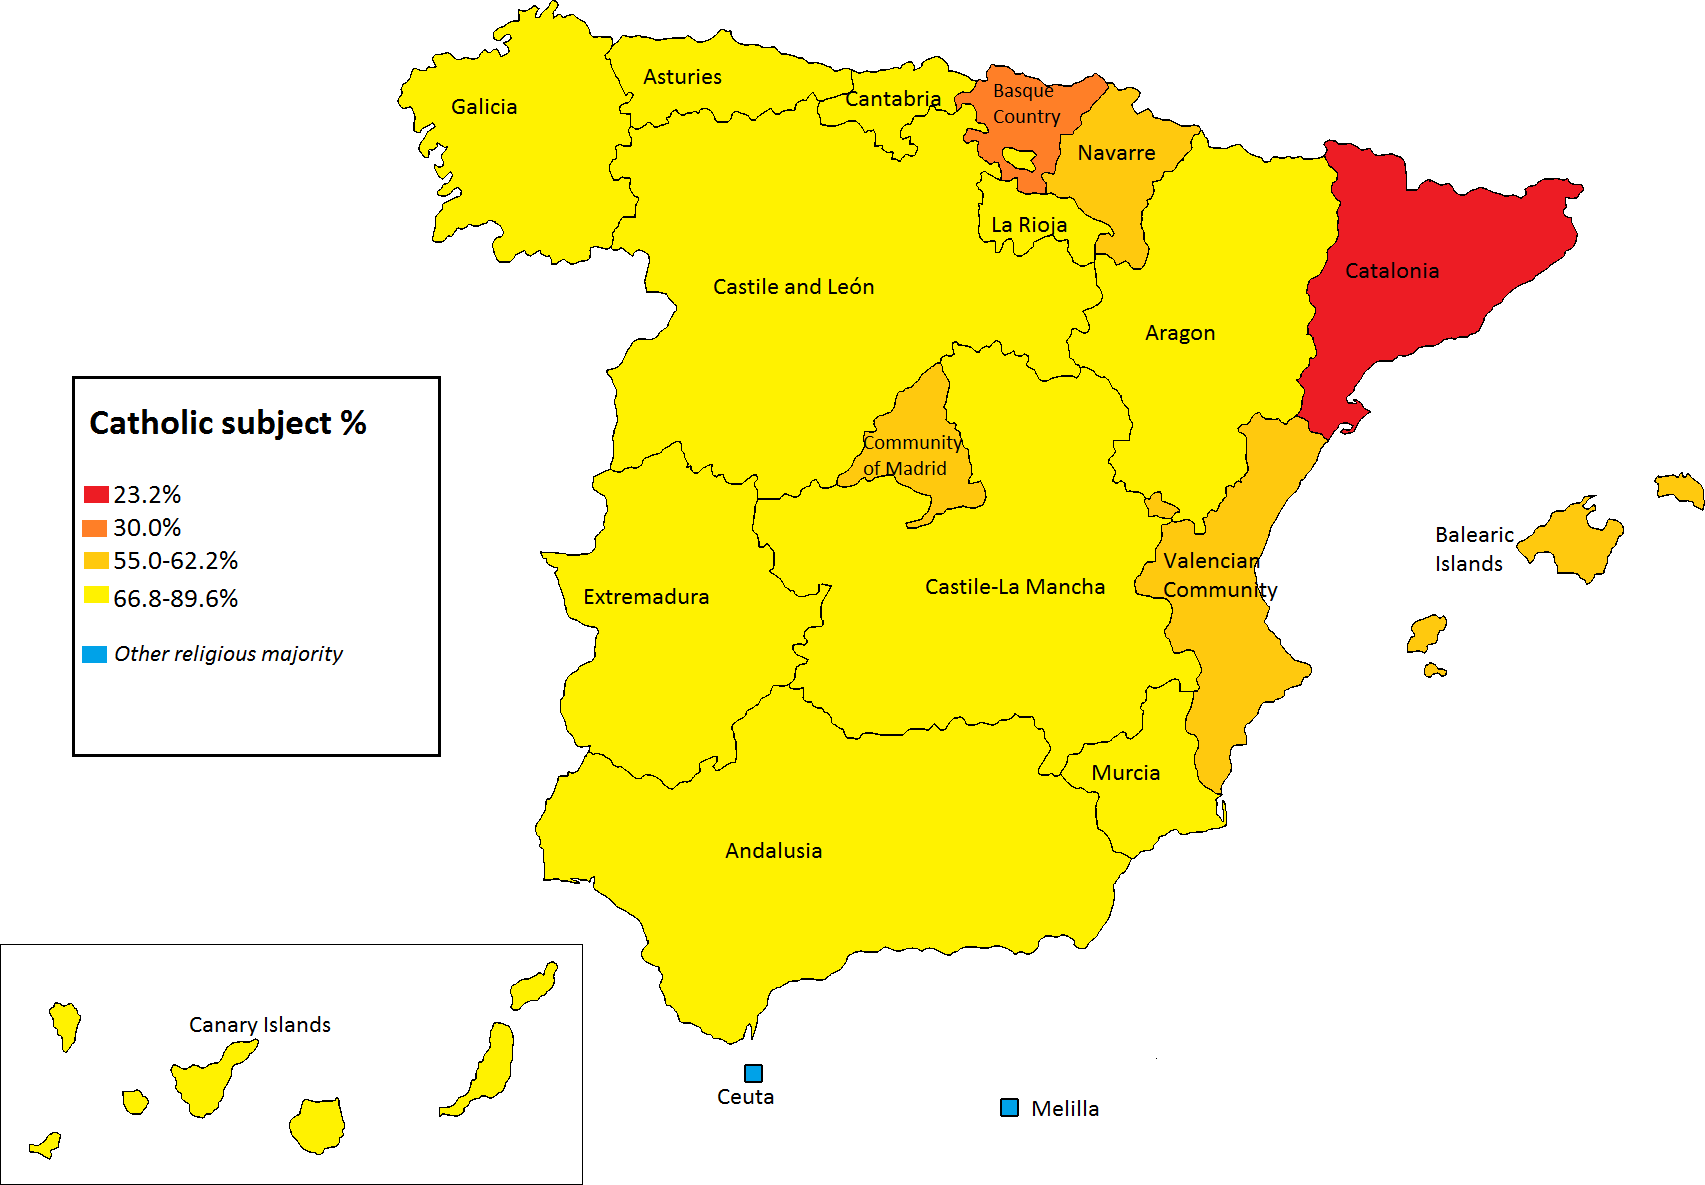 Fascinating Maps about Spain to Geek out Over